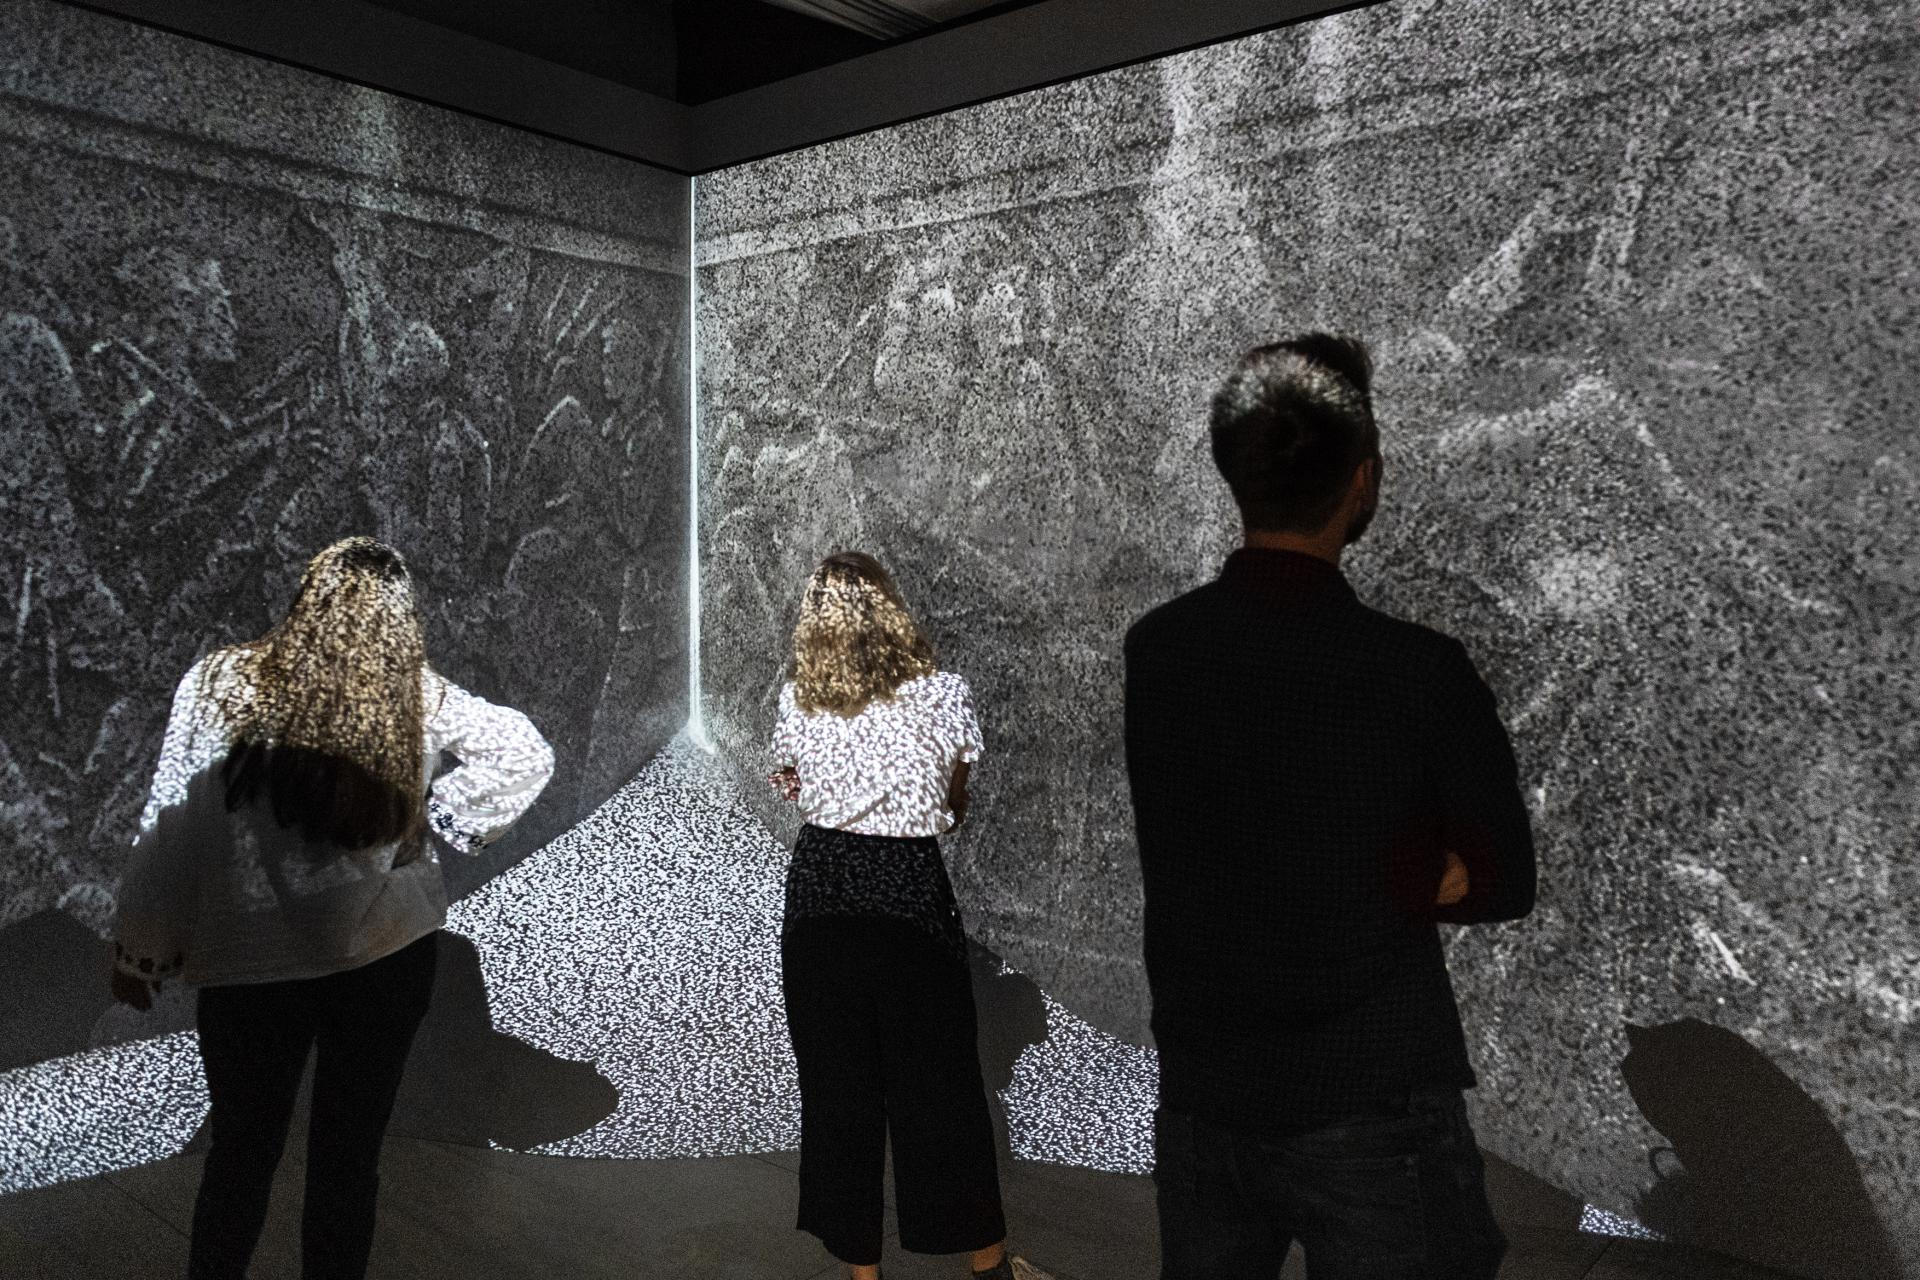 Installation view of Moments of Silence at IWM London